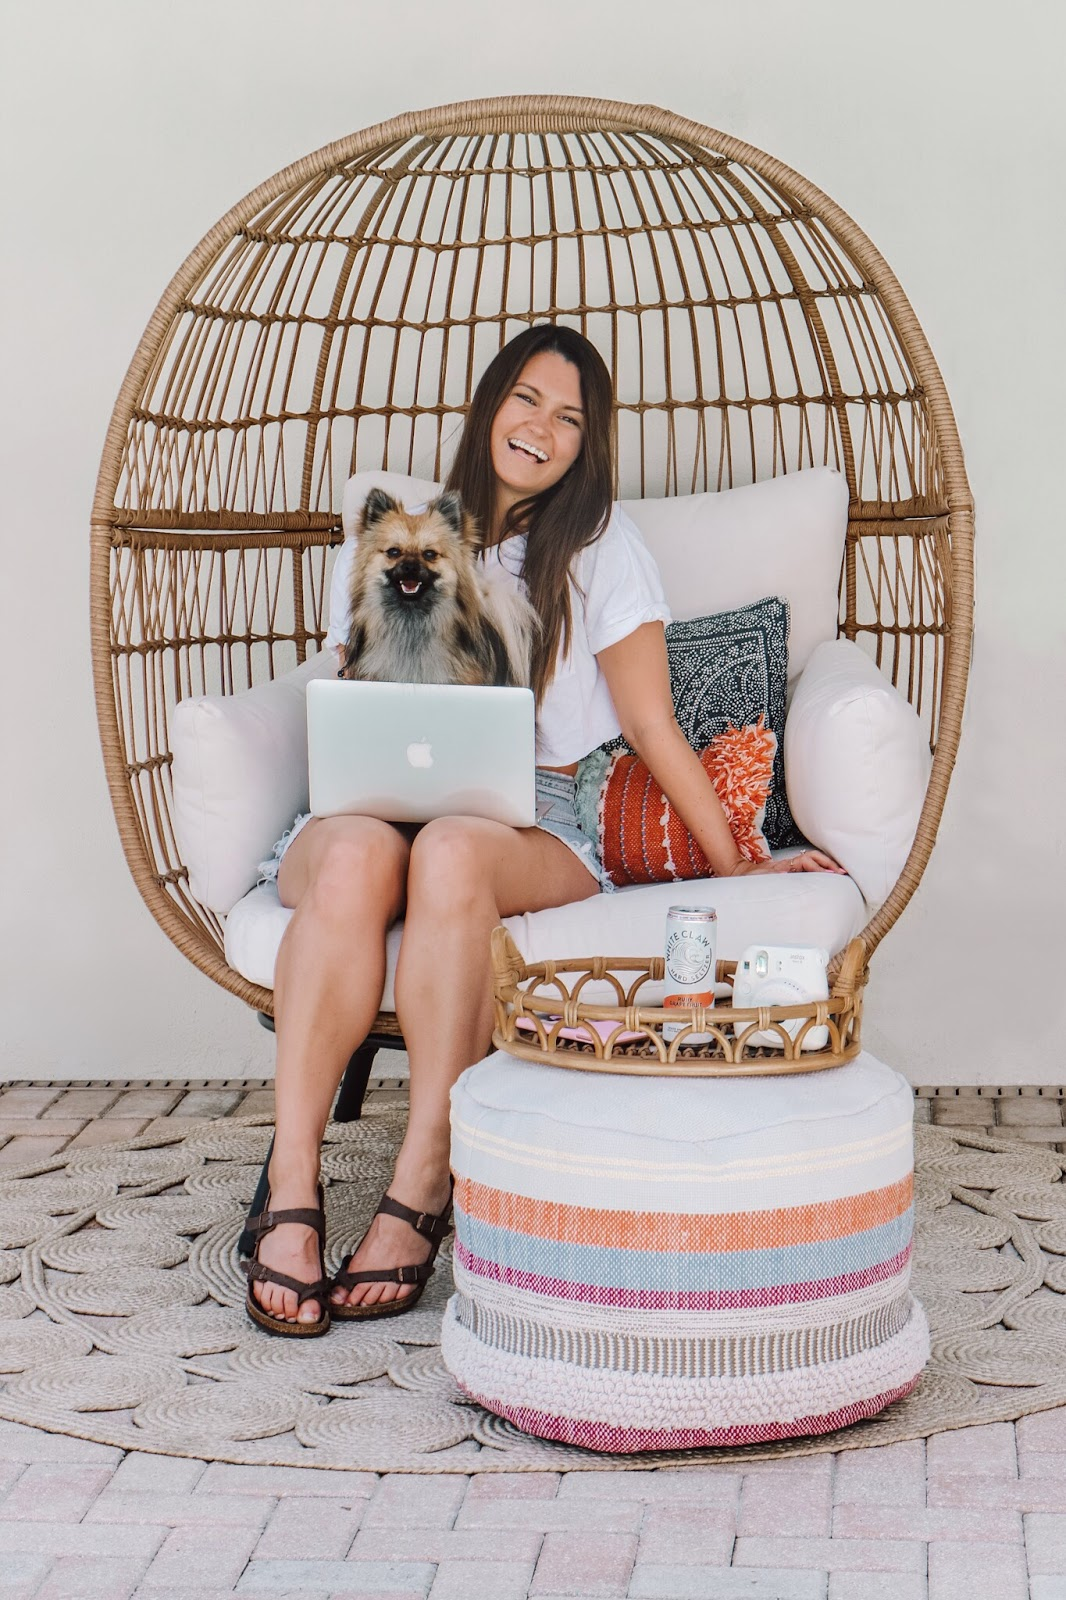 Tampa Bay Florida Blogger sitting in her egg chair on her patio answering blogging questions